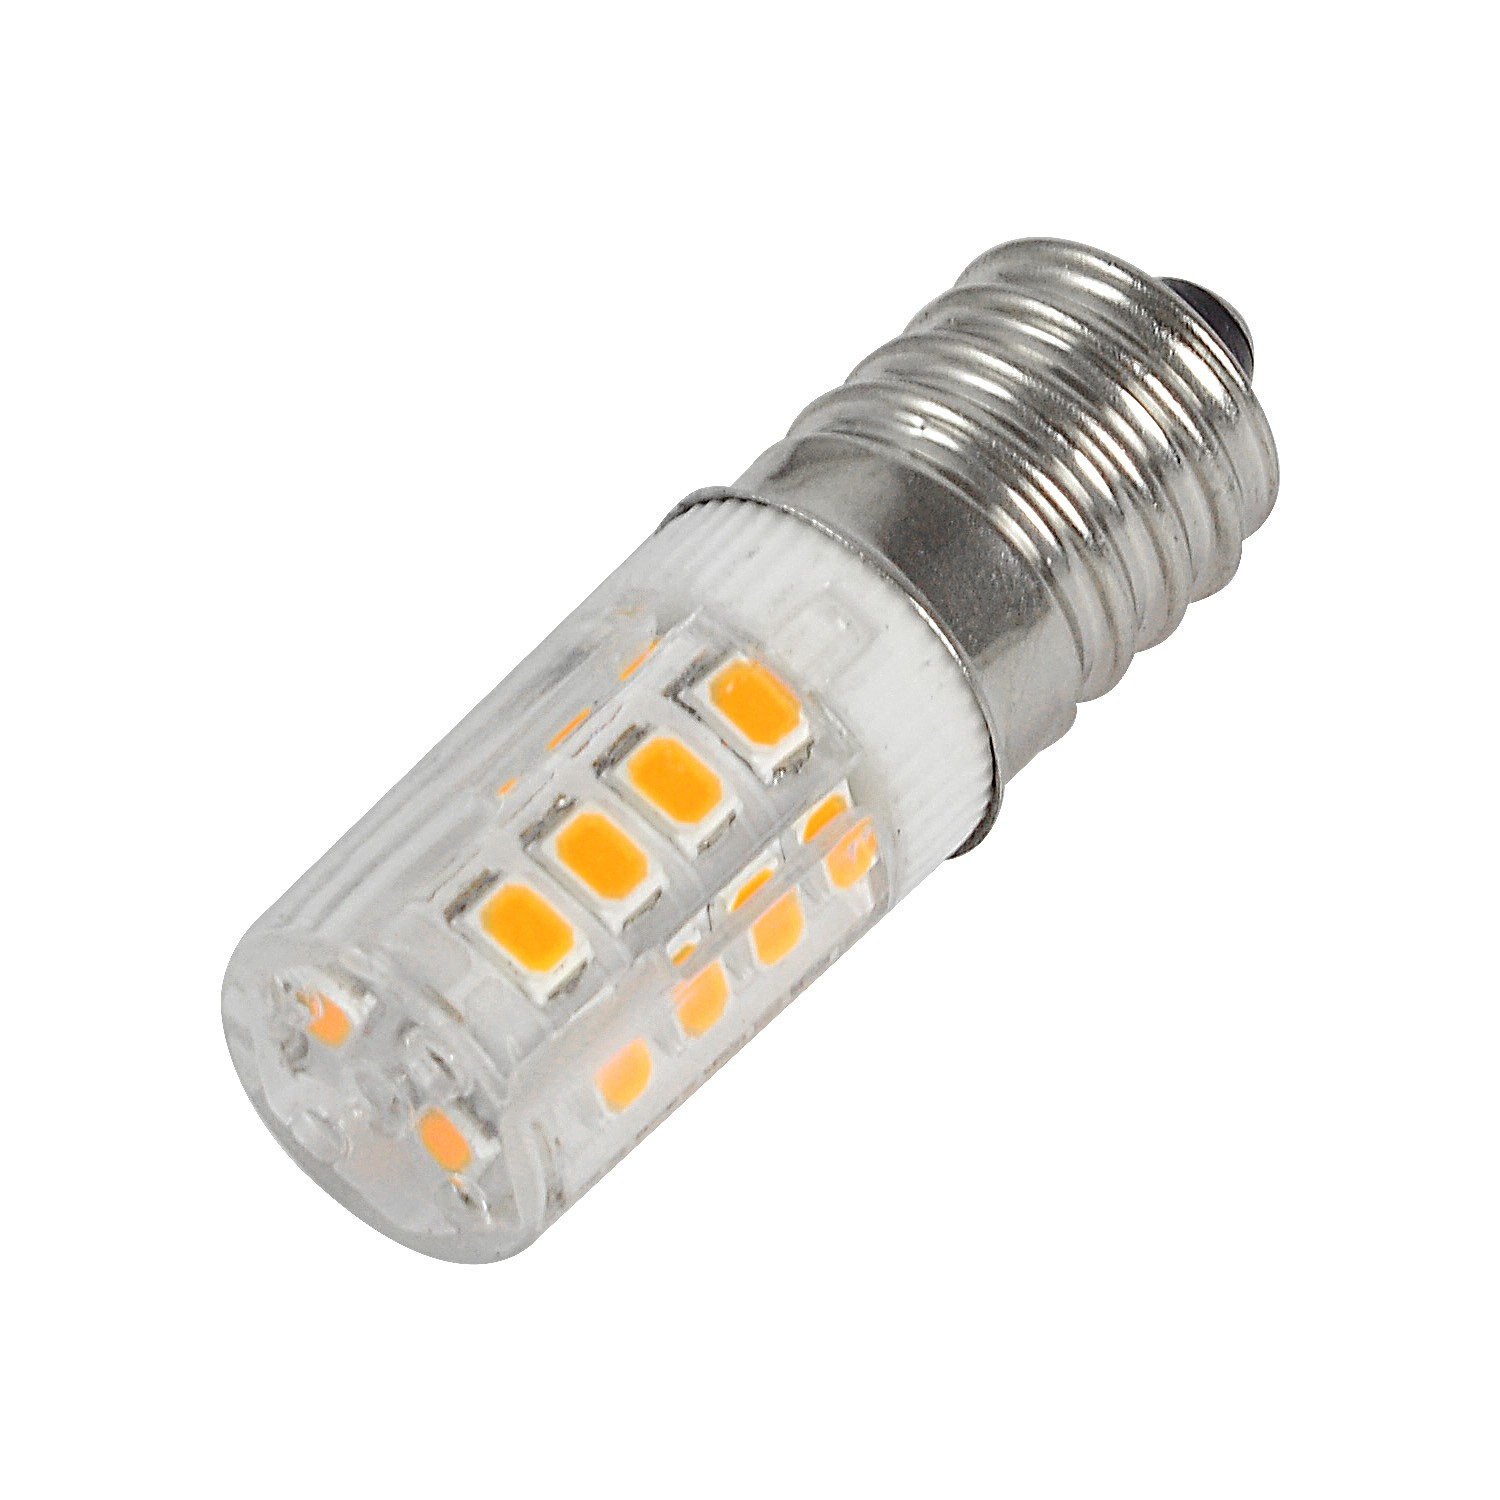 Mengsled Mengs E14 3w Led Light 26x 2835 Smd Led Bulb Lamp Ac 220 240v In Warm White Cool